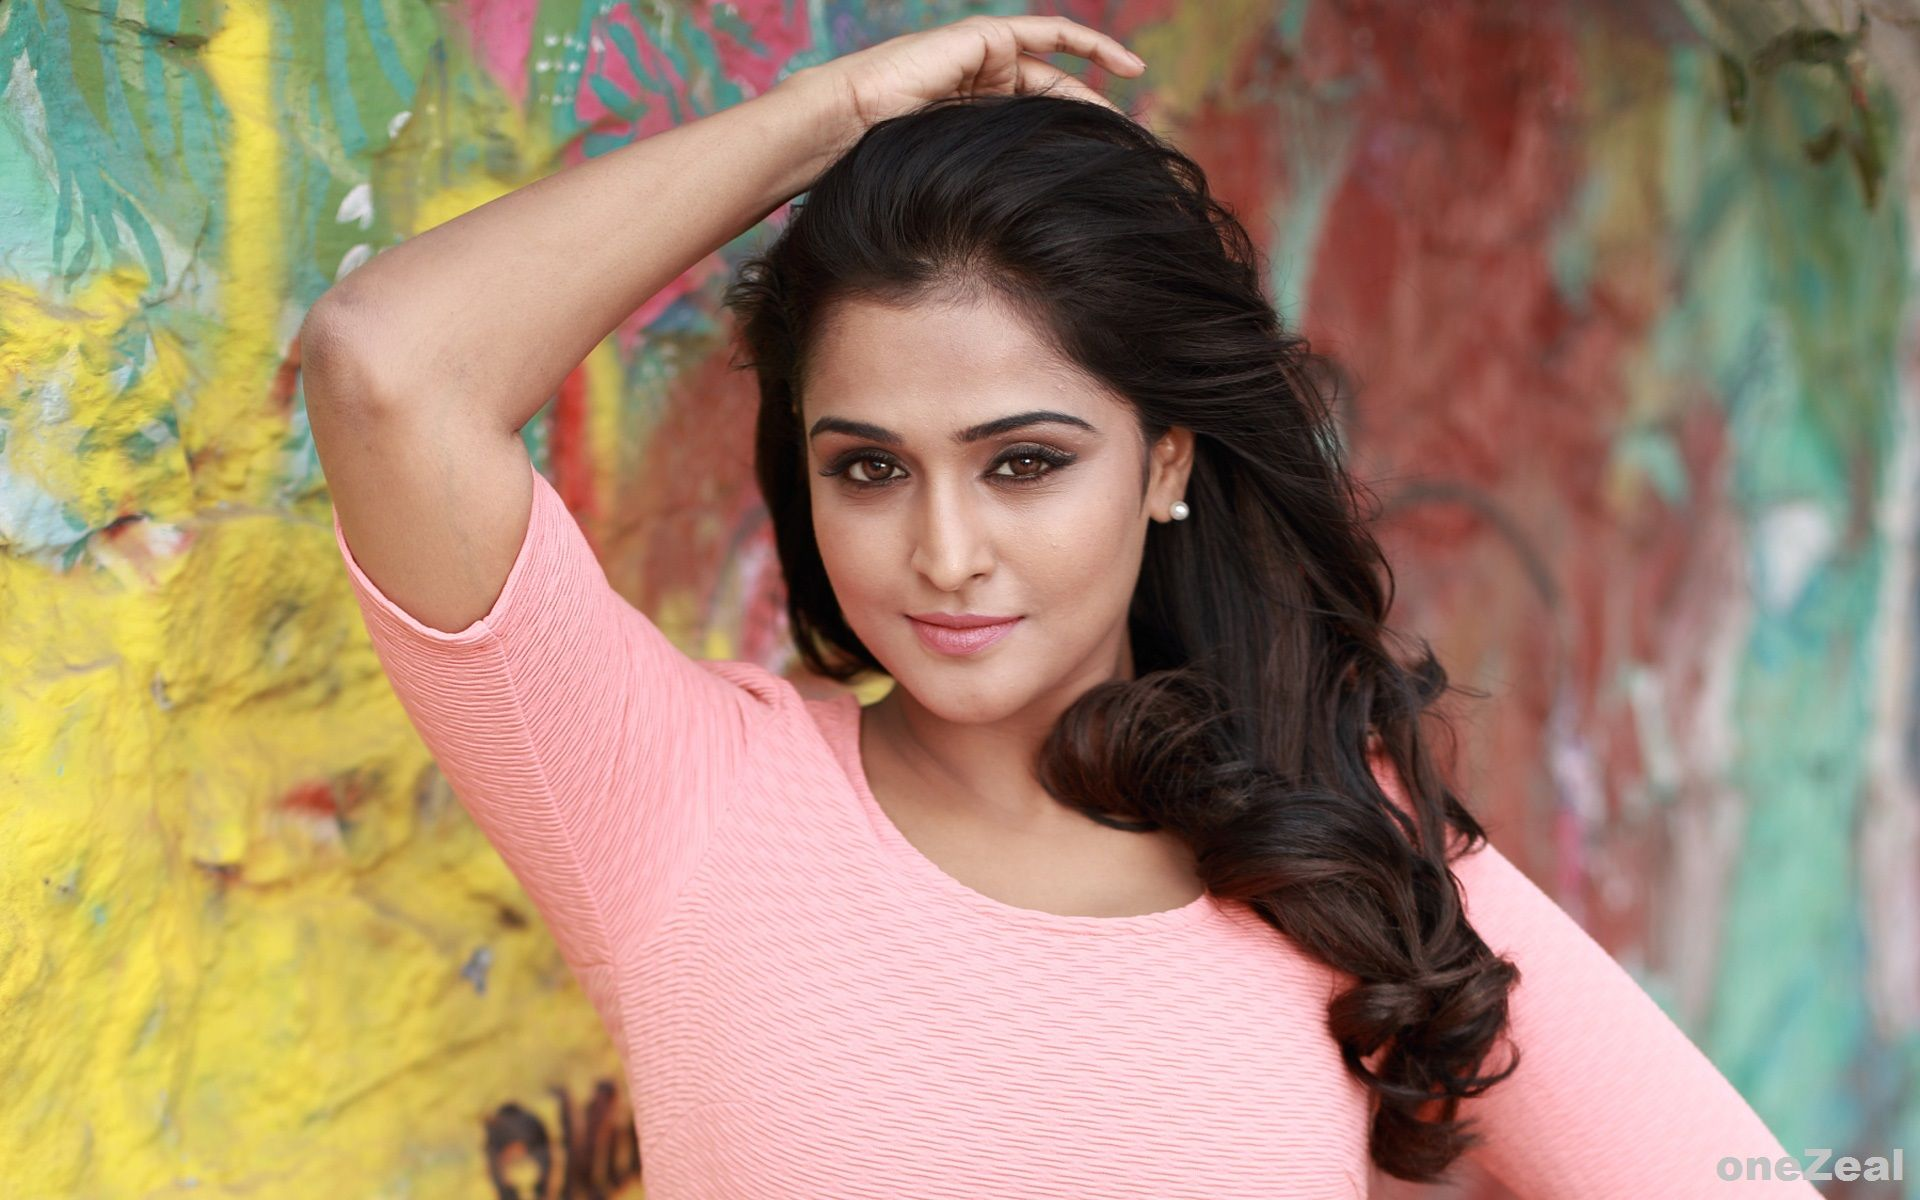 Full Hd Wallpapers Bollywood Actress Wallpaper 1920 1080: Download HD Remya Nambeesan Actress Wallpapers For Your